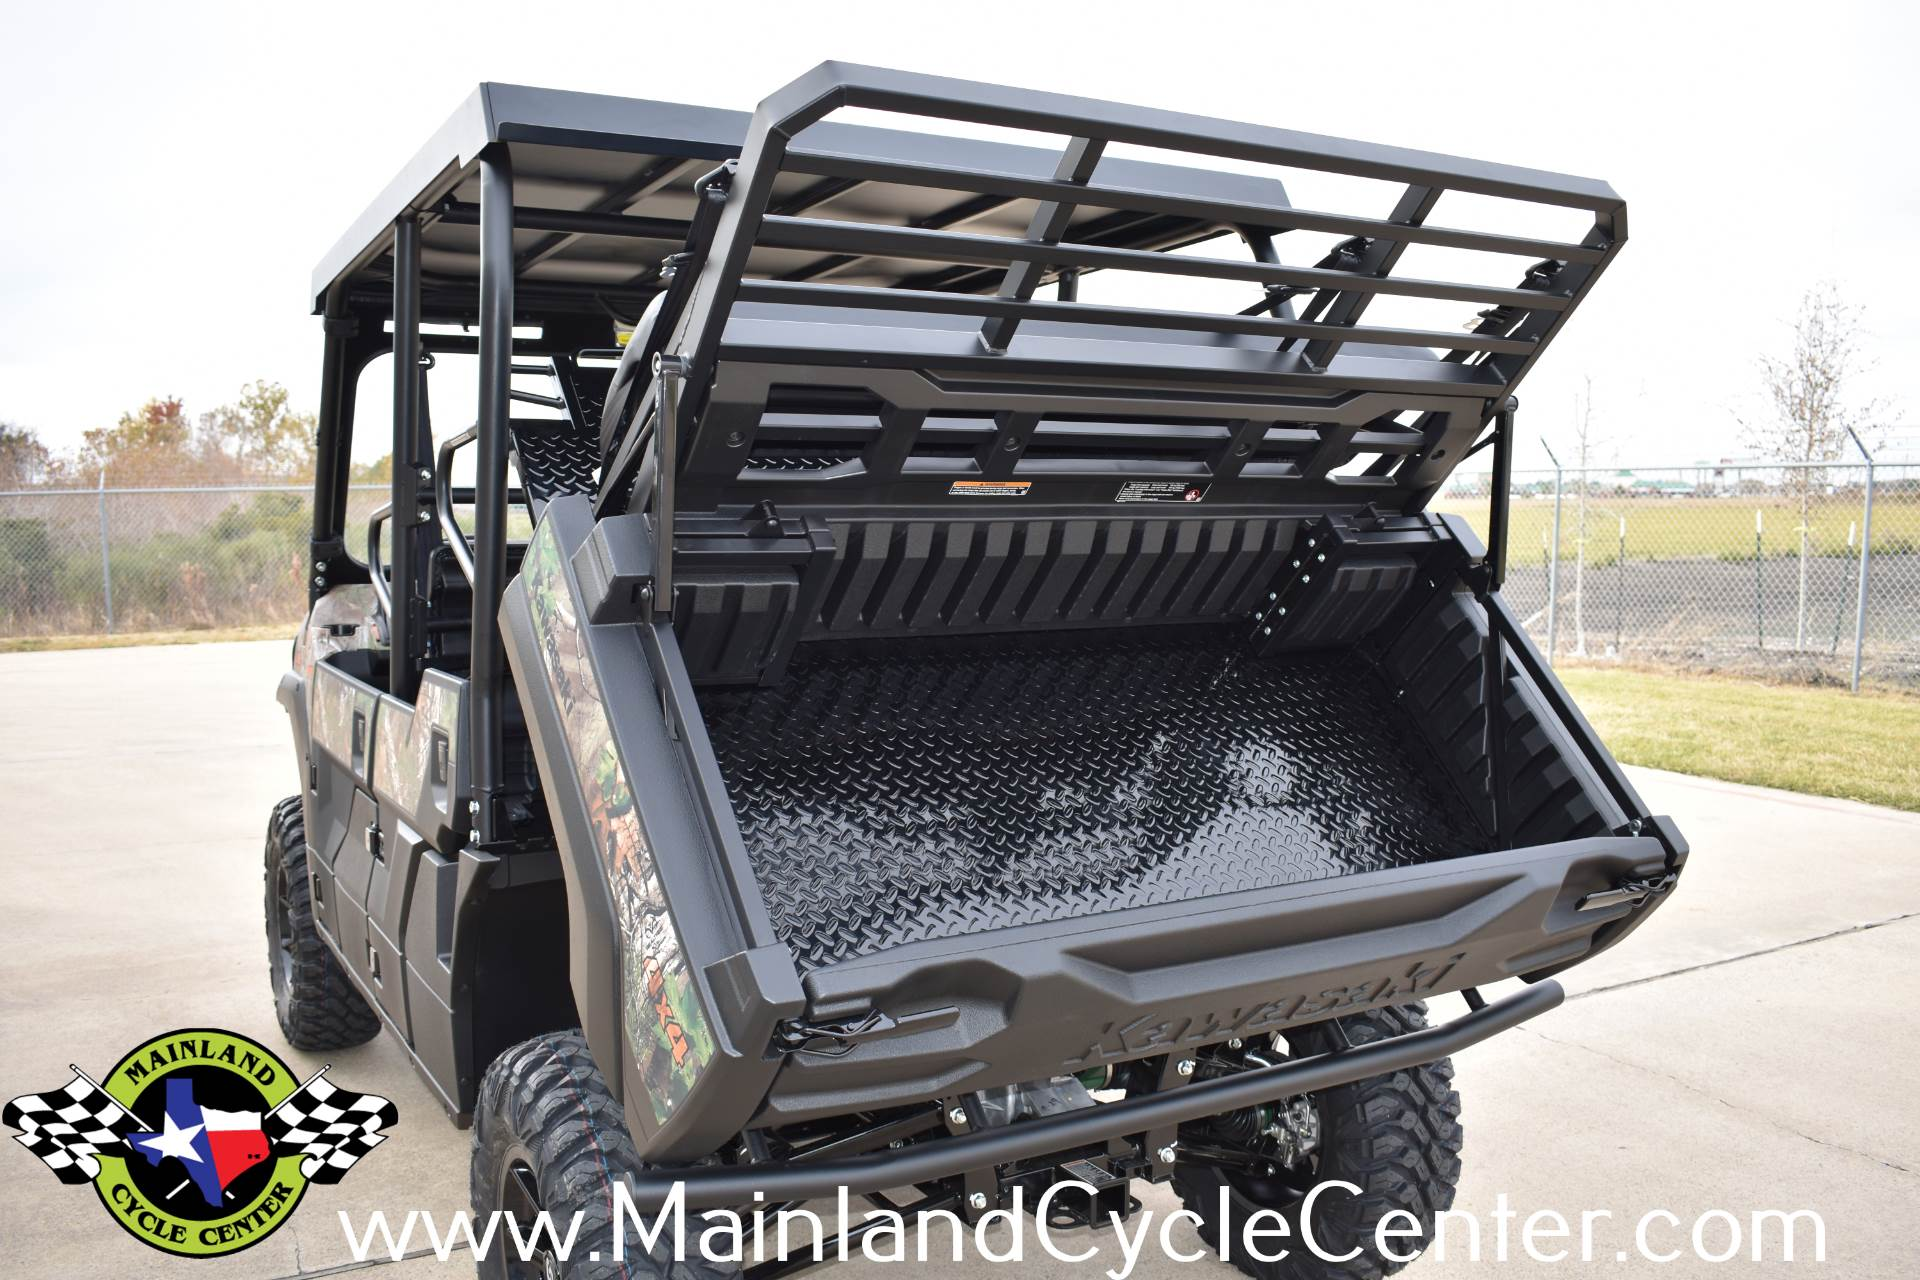 2018 Kawasaki Mule PRO-FXT EPS Camo in La Marque, Texas - Photo 23